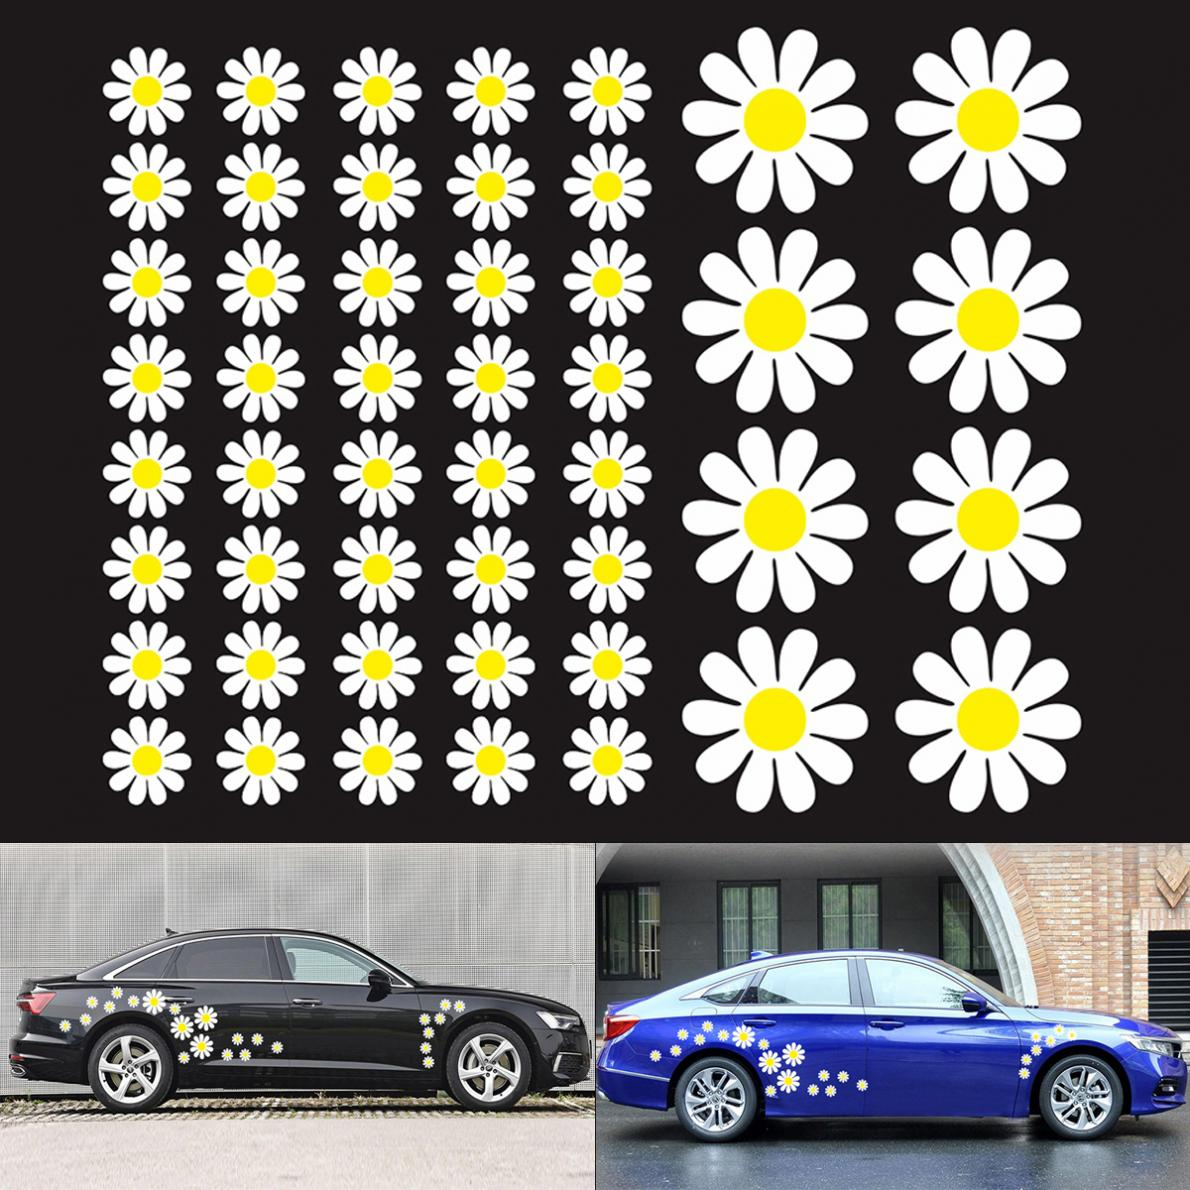 48pcs/set PVC Daisy Flower Pattern Car Stickers And Decals Personality Car Motorcycle Body Bumper Hood Scratch Sticker